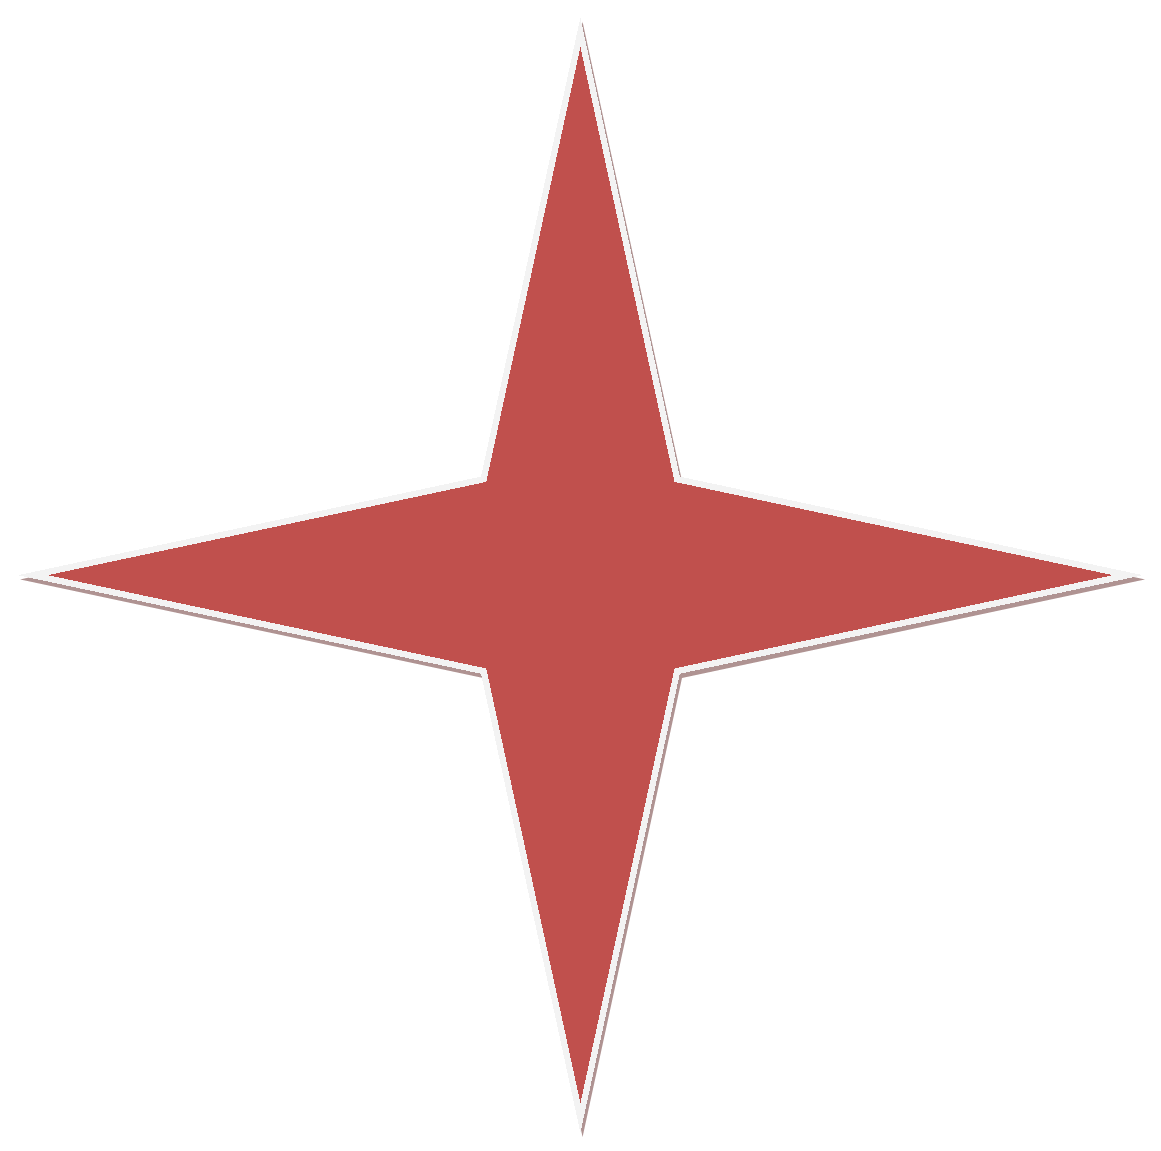 File:Red 4 Point Star.png.